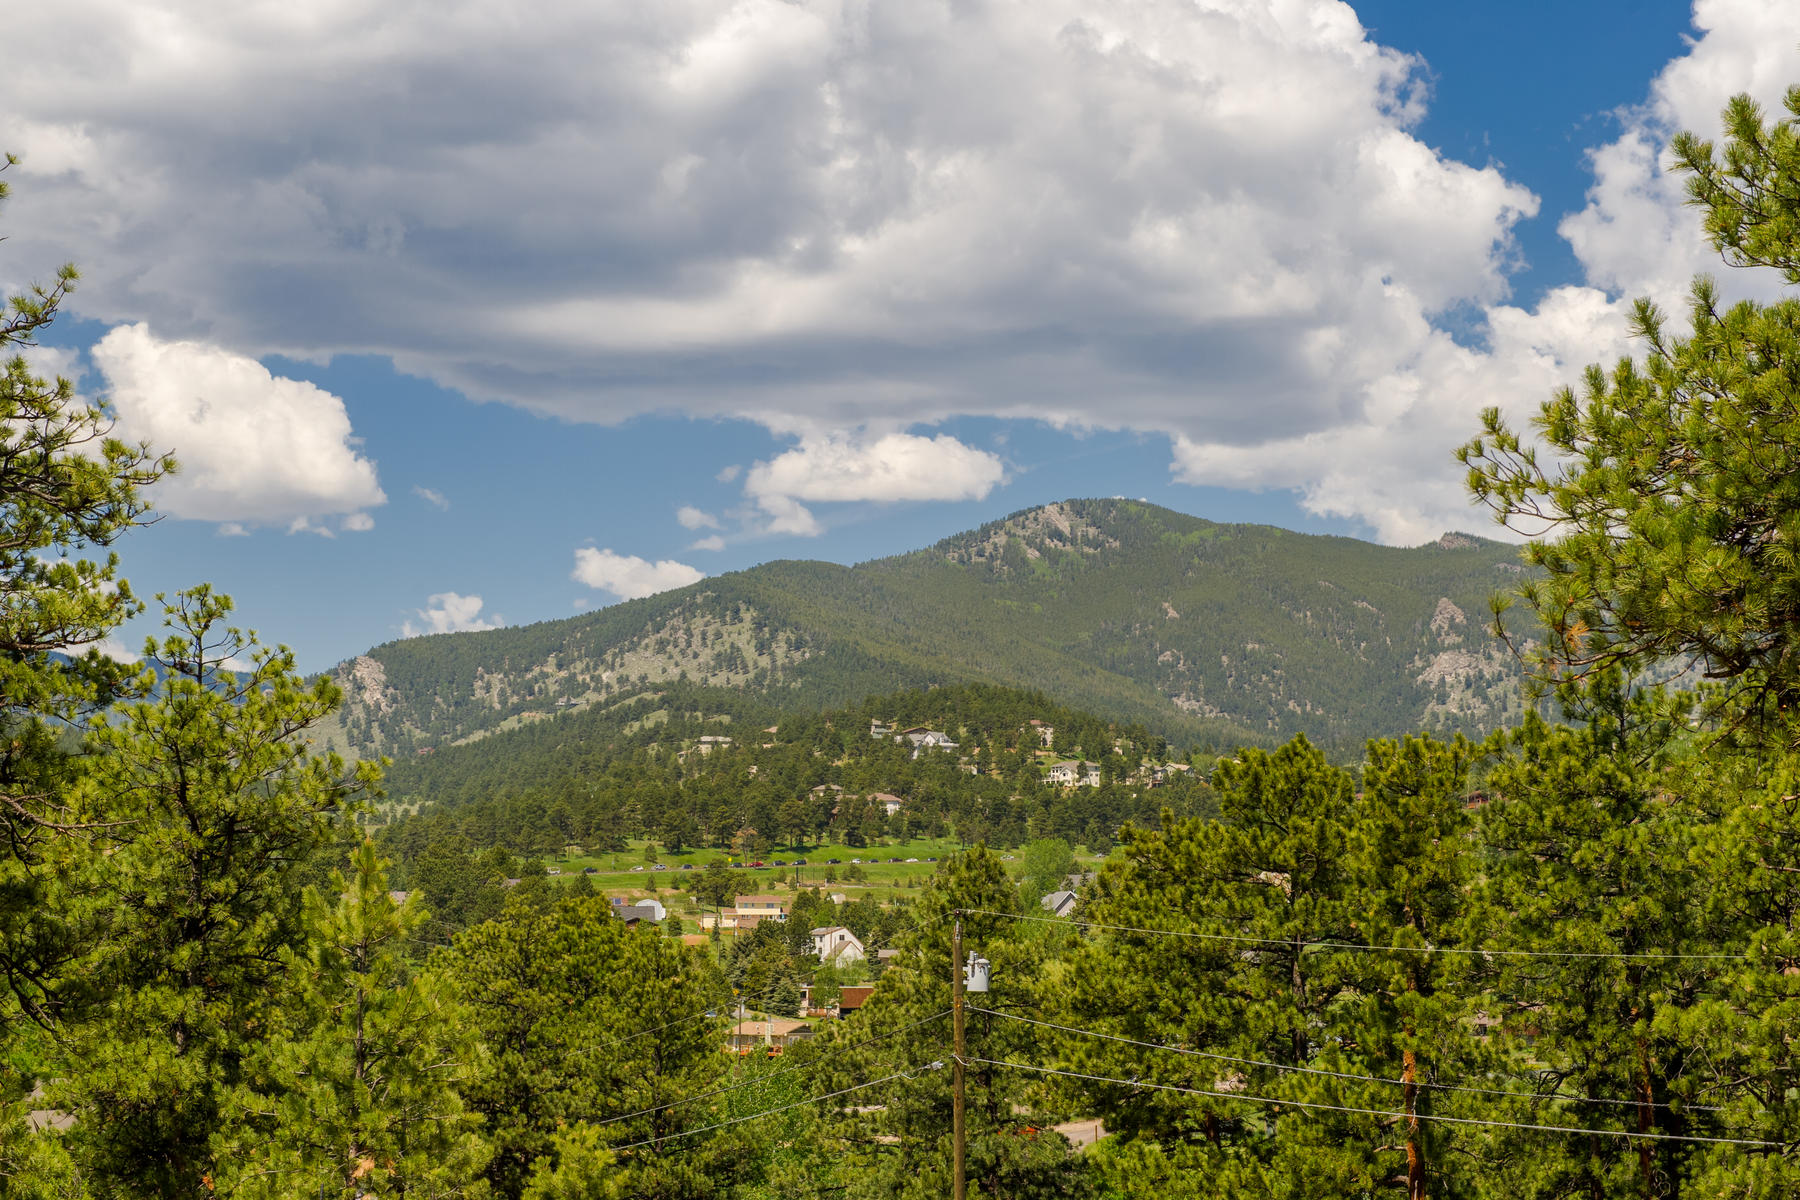 Land for Sale at Bergen Peak Views, Quiet, Secluded, Yet Easy Access to Amenities 3377 Bronco Lane, Evergreen, Colorado, 80439 United States